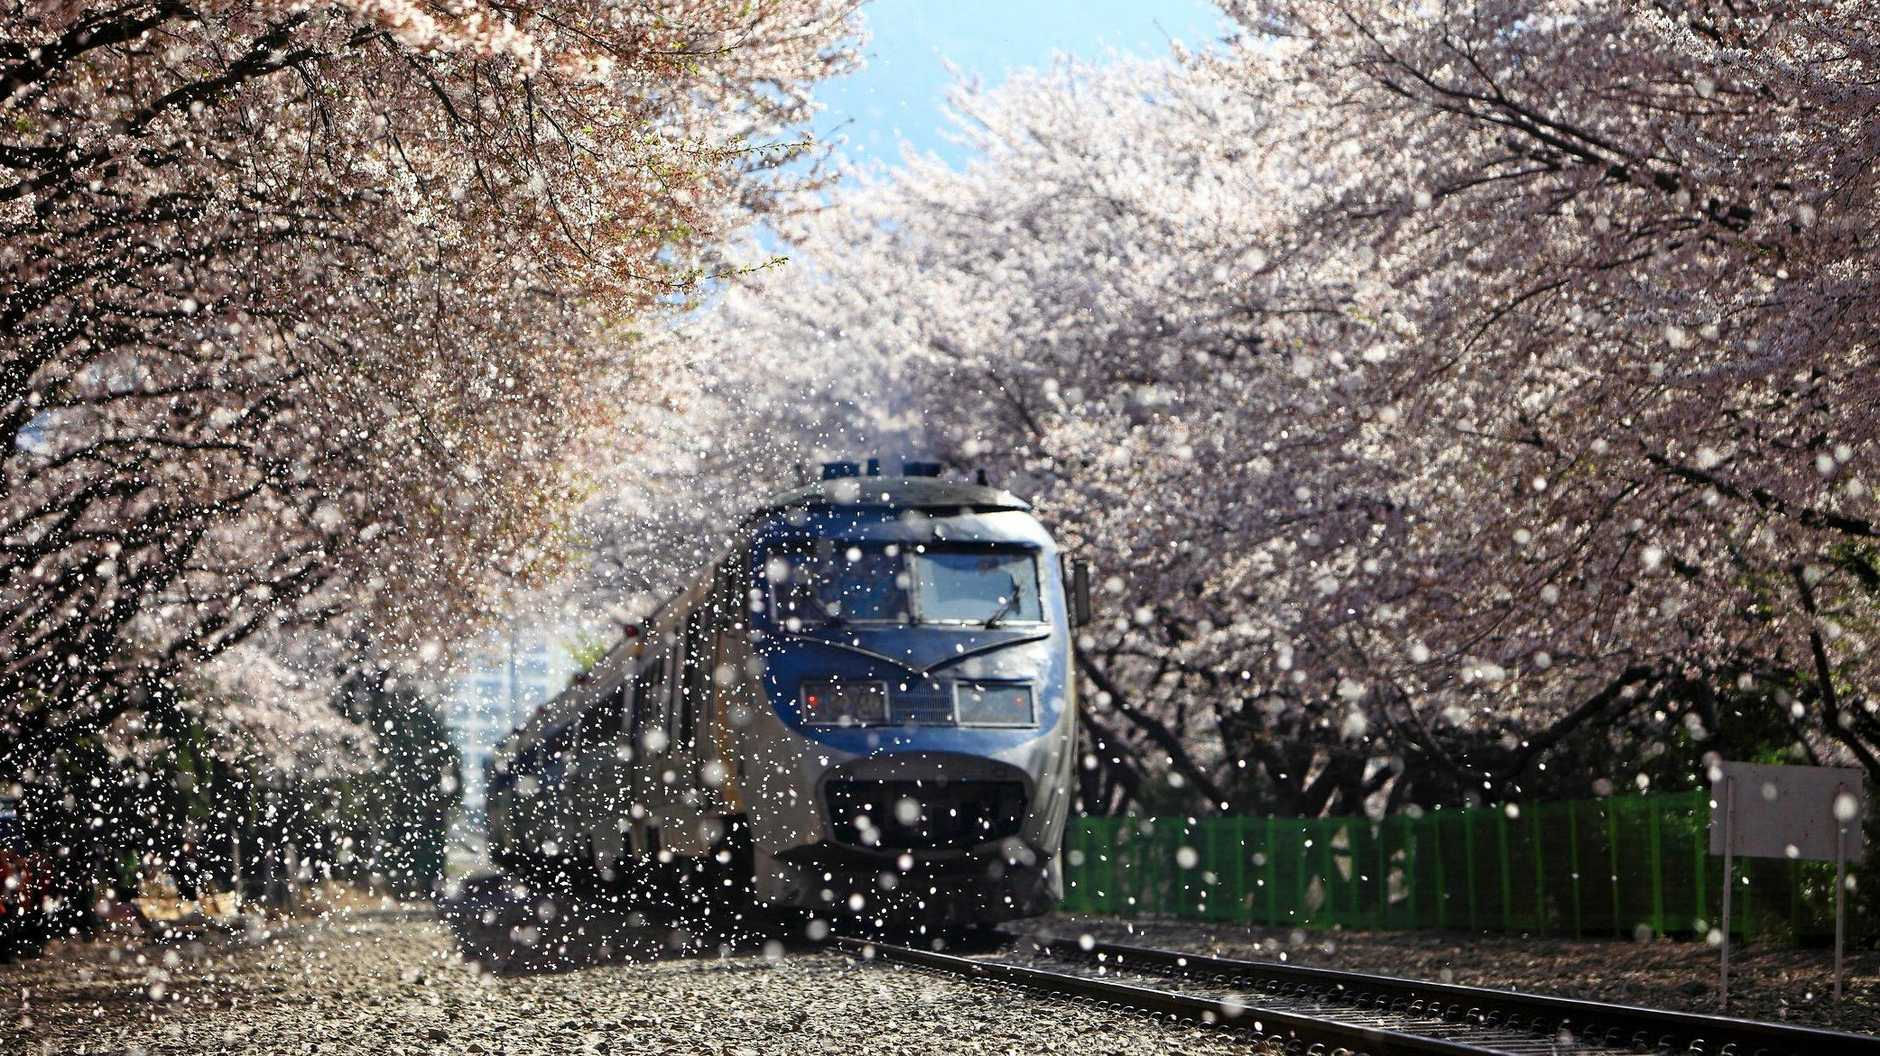 SPRING BLOOM: For just two or three weeks each year the magnificent cherry blossoms float in warm Korean breeze.